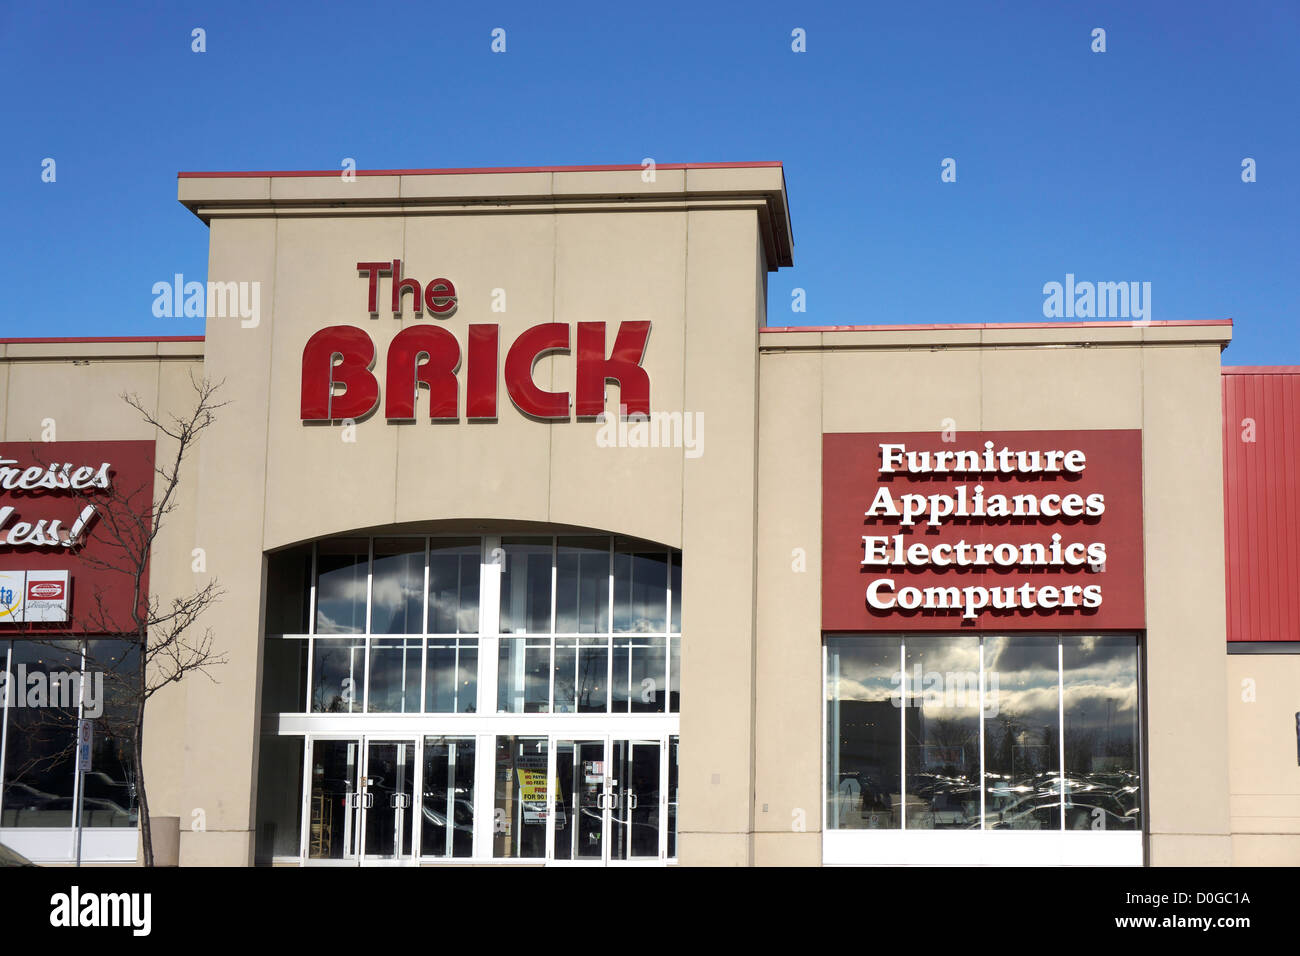 The Brick, furniture, electronics, computers, appliances store, Ontario Canada - Stock Image